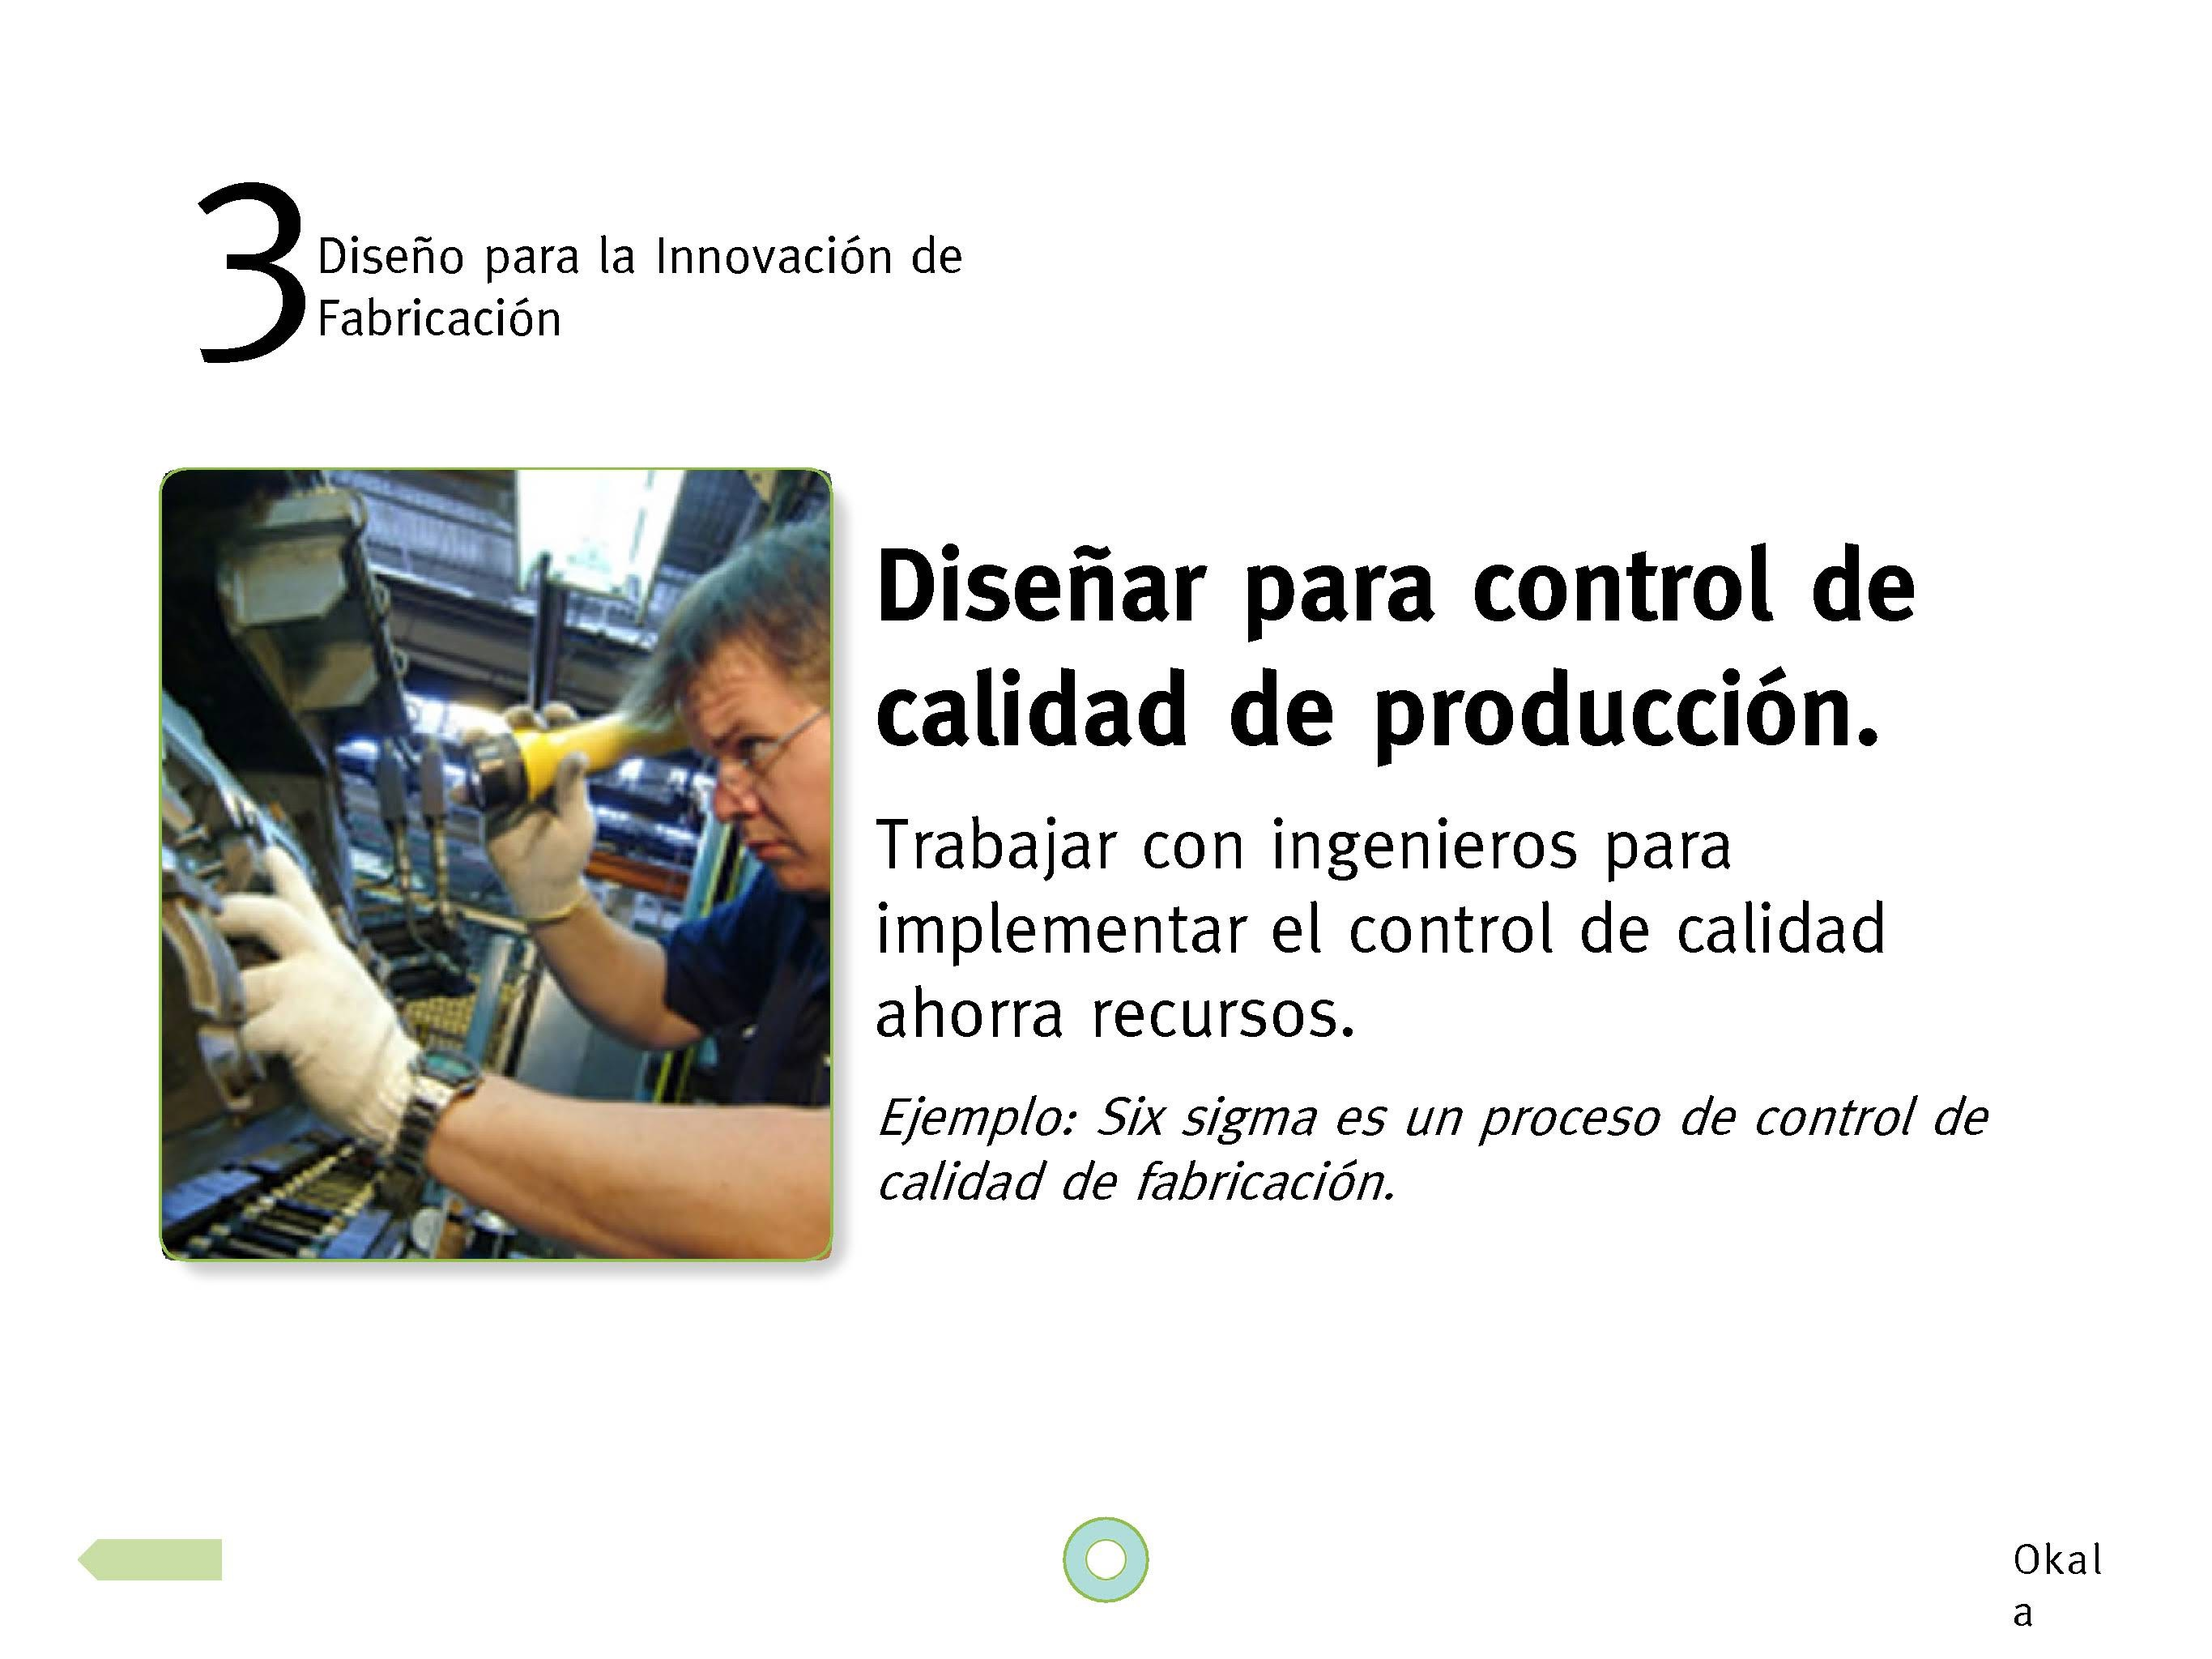 okala-ecodesign-strategy-guide-2012-spanish.new_page_17-1